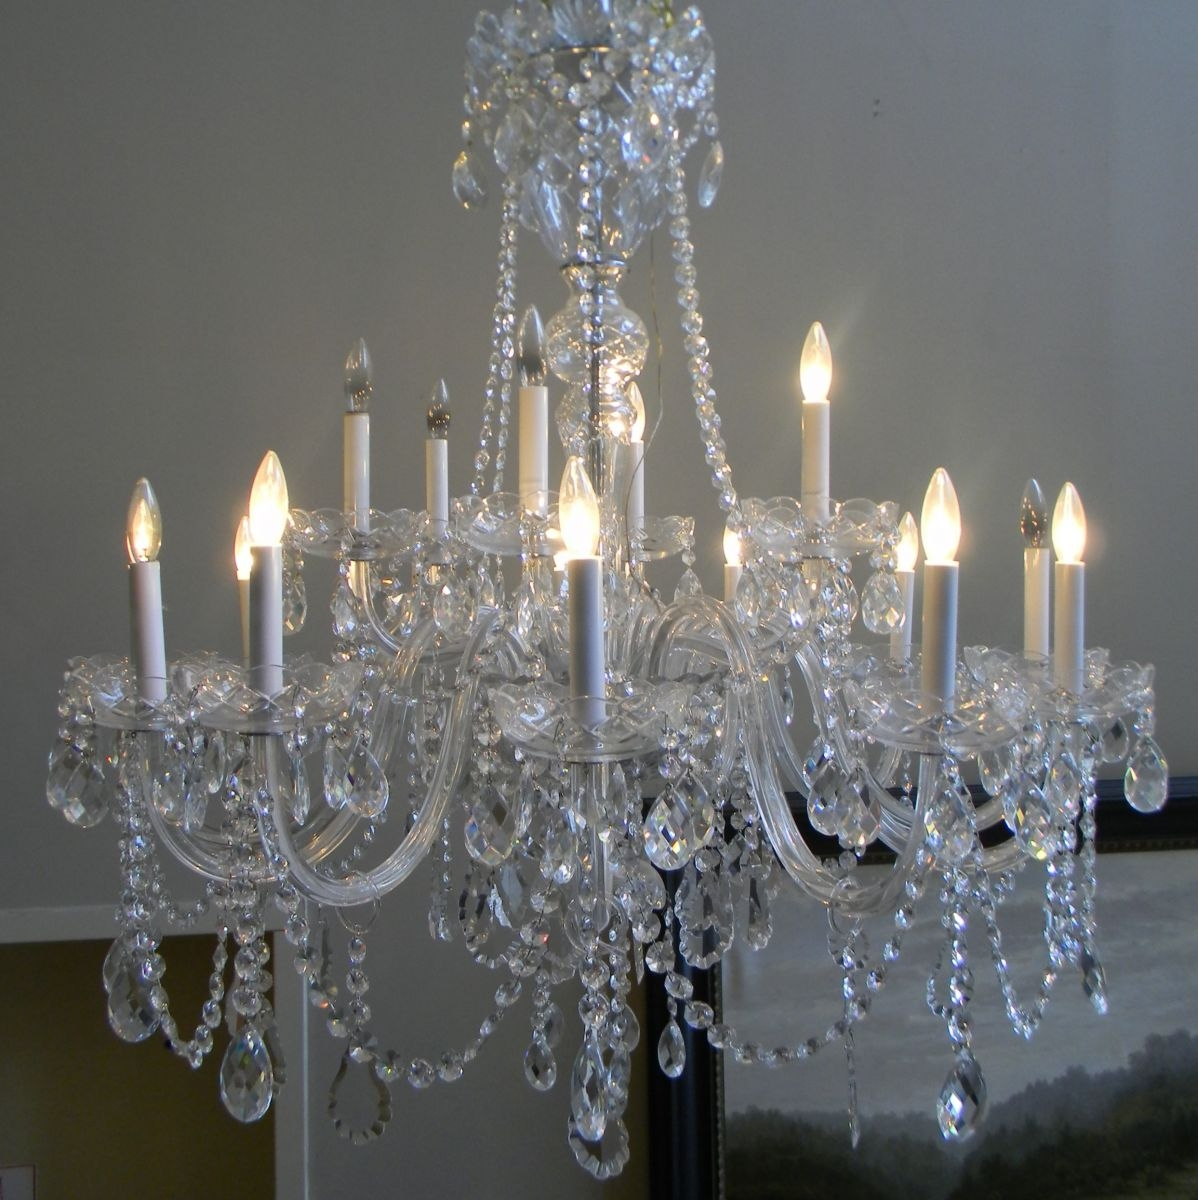 Gas Lamp Antiques Regarding Huge Crystal Chandelier (View 6 of 15)